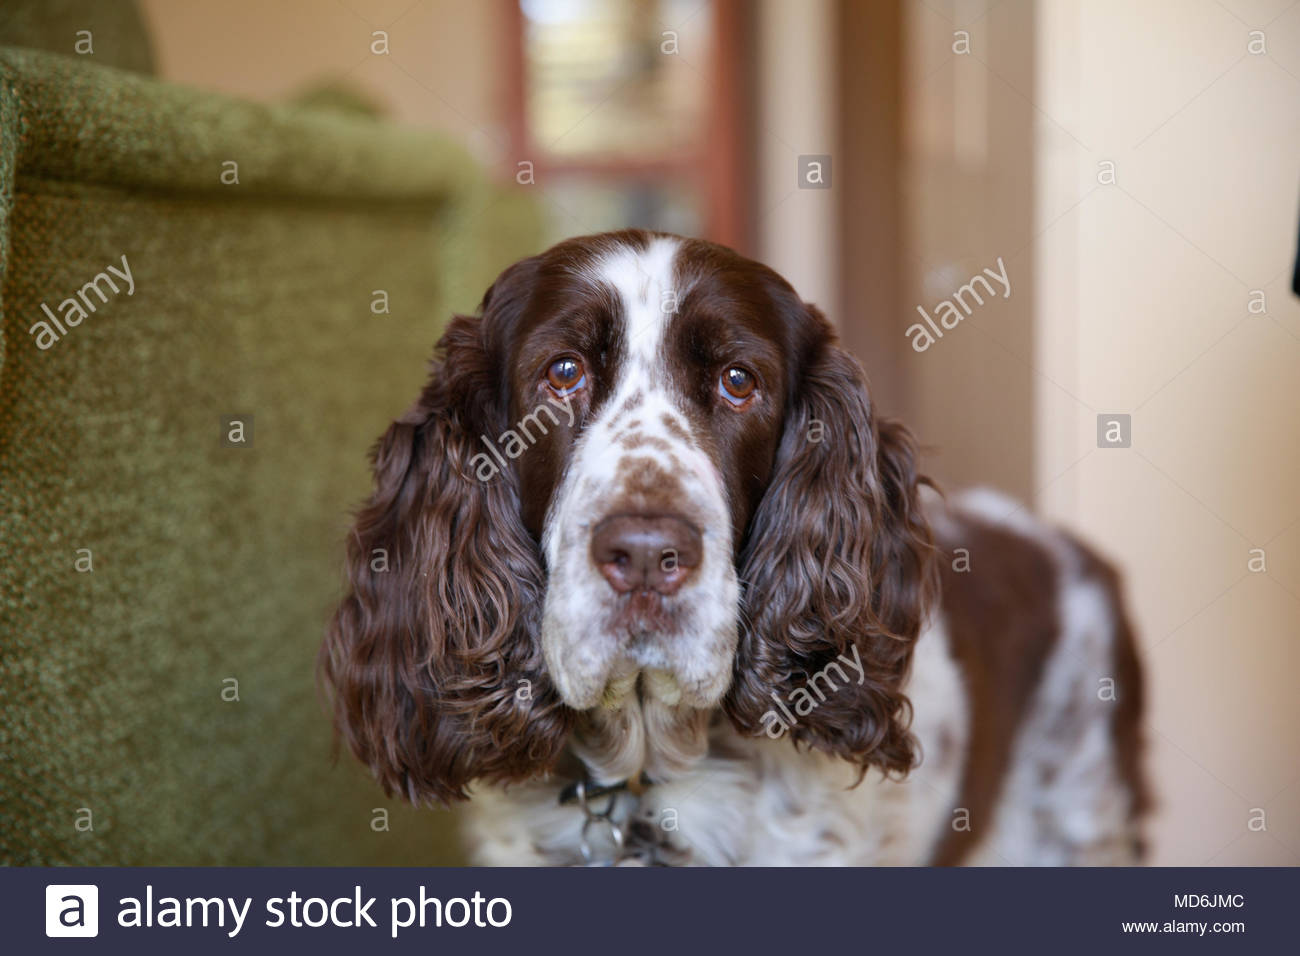 Close-up of Liver and White Springer Spaniel Dog standing next to couch - Stock Image